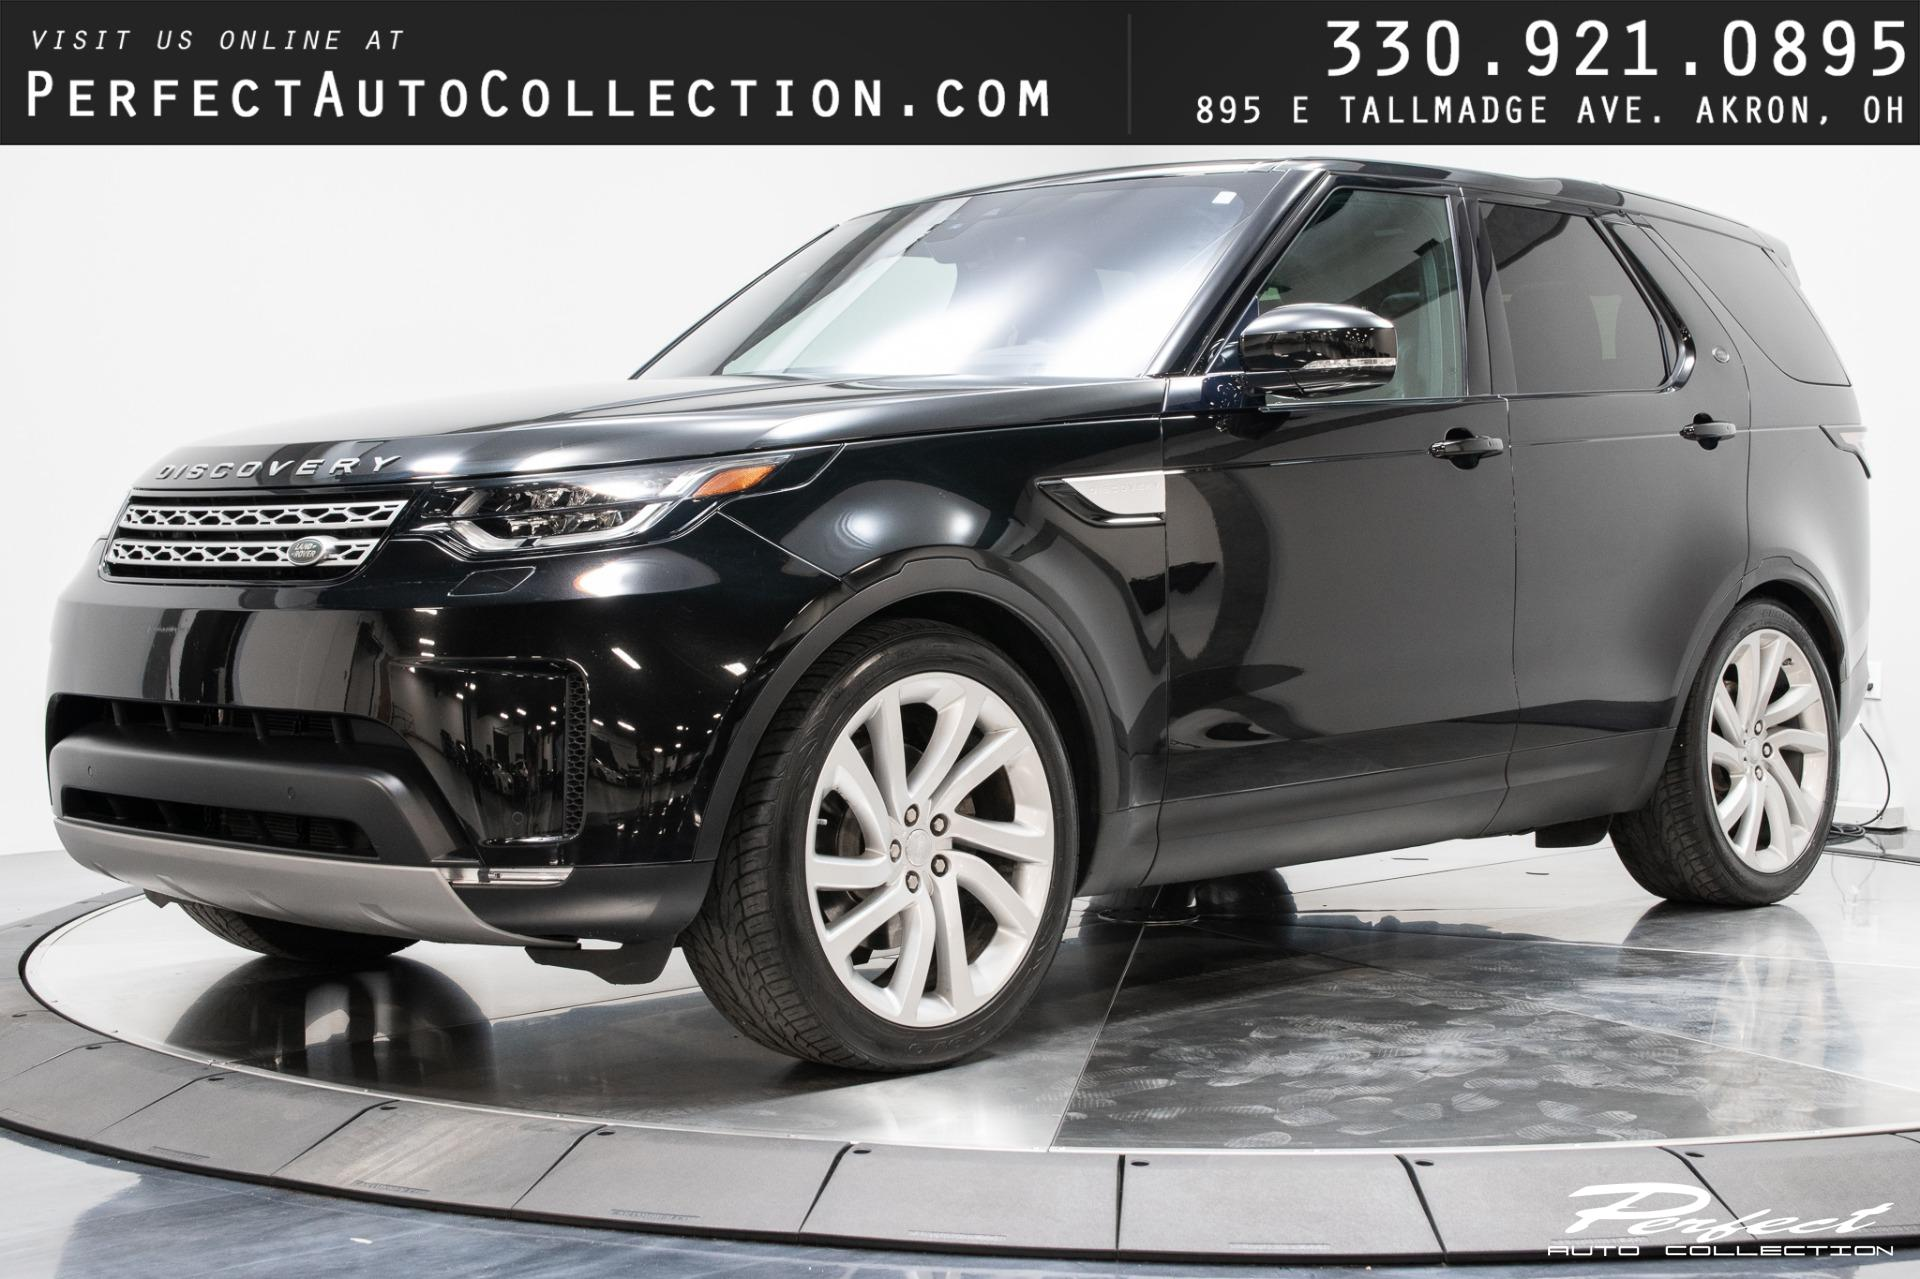 Used 2017 Land Rover Discovery HSE Td6 for sale Sold at Perfect Auto Collection in Akron OH 44310 1